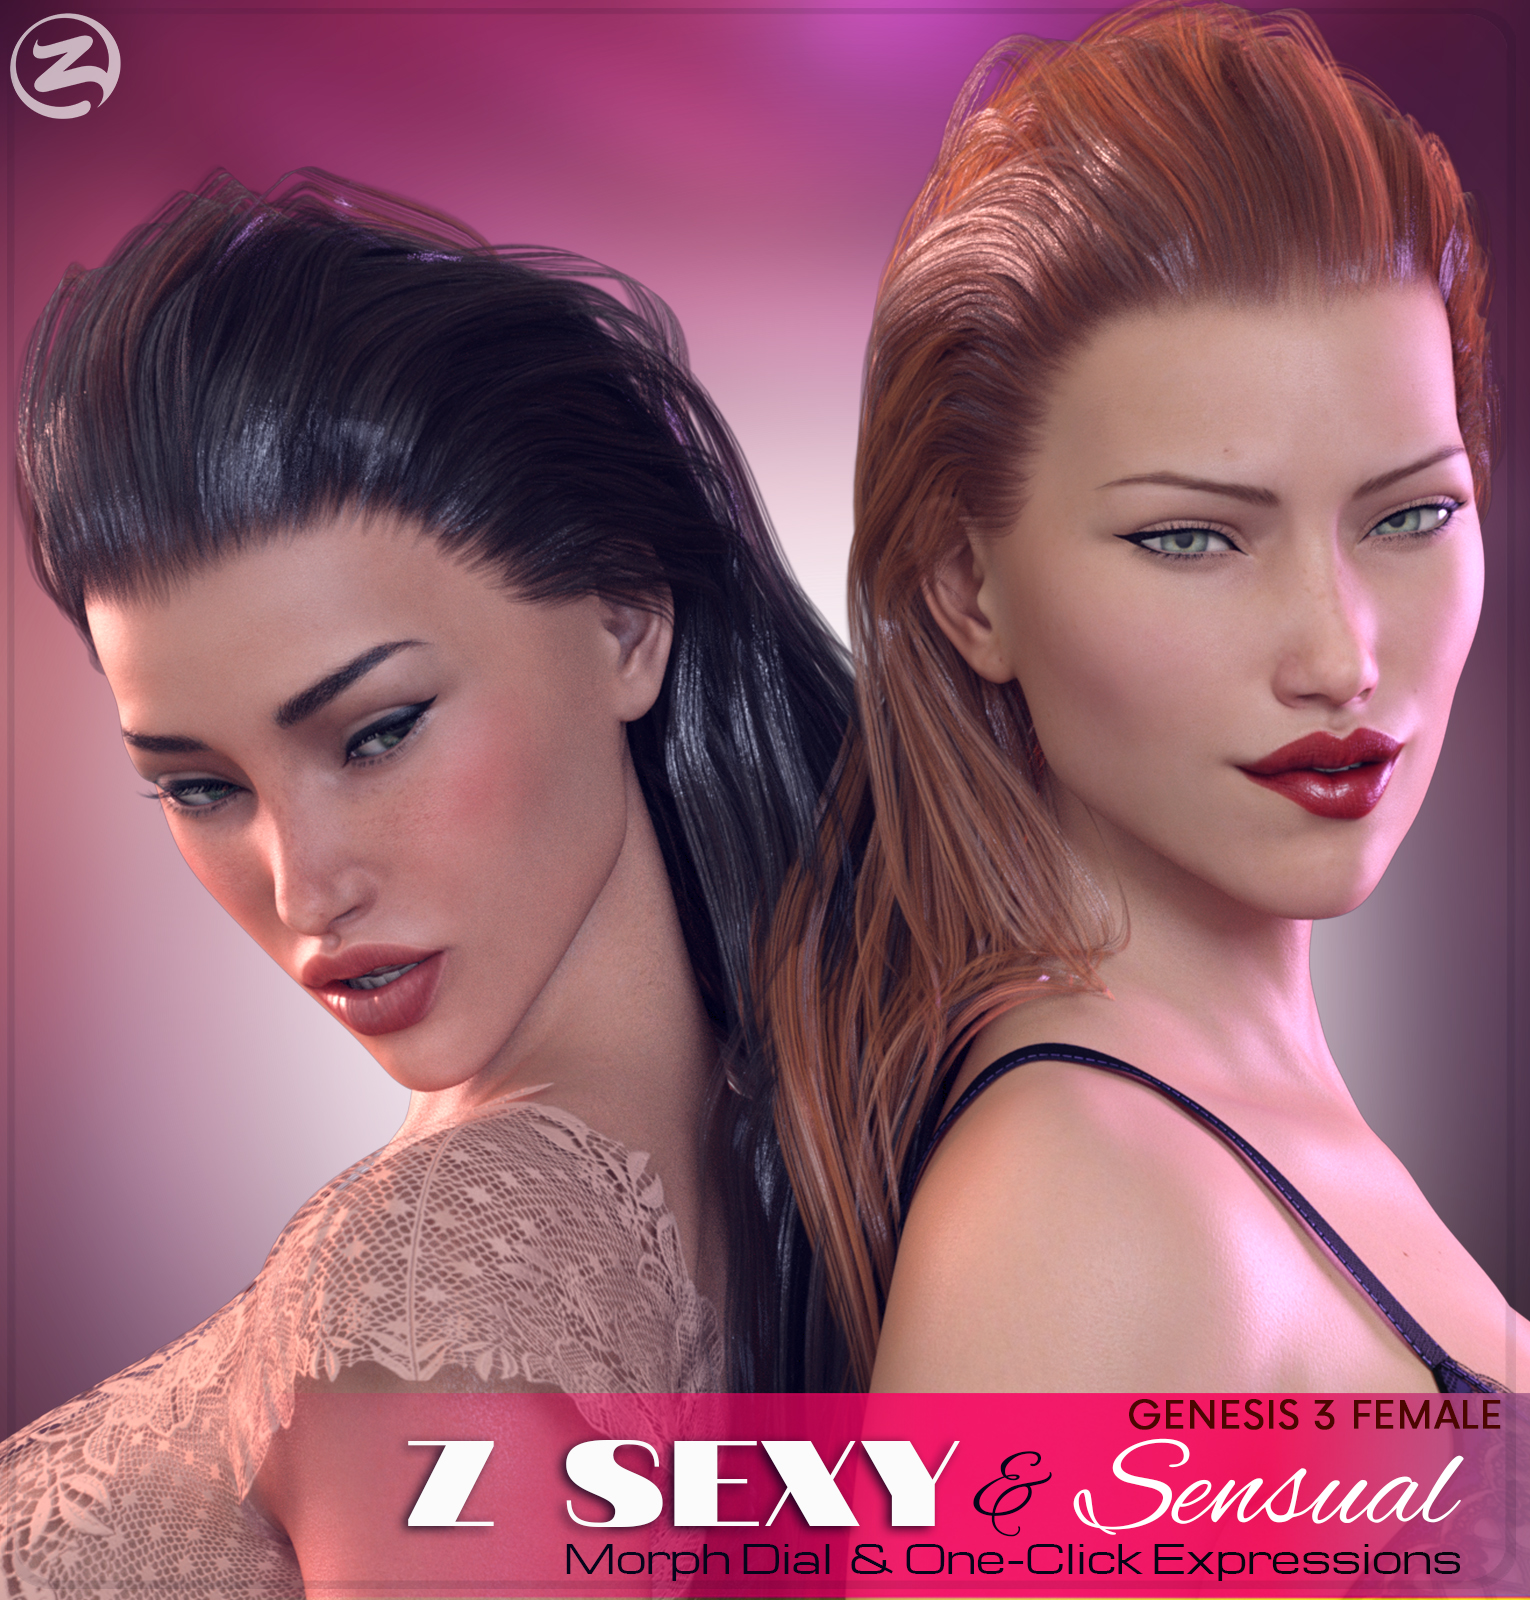 Z Sexy & Sensual - Morph Dial & One-Click Expressions for the Genesis 3 Females